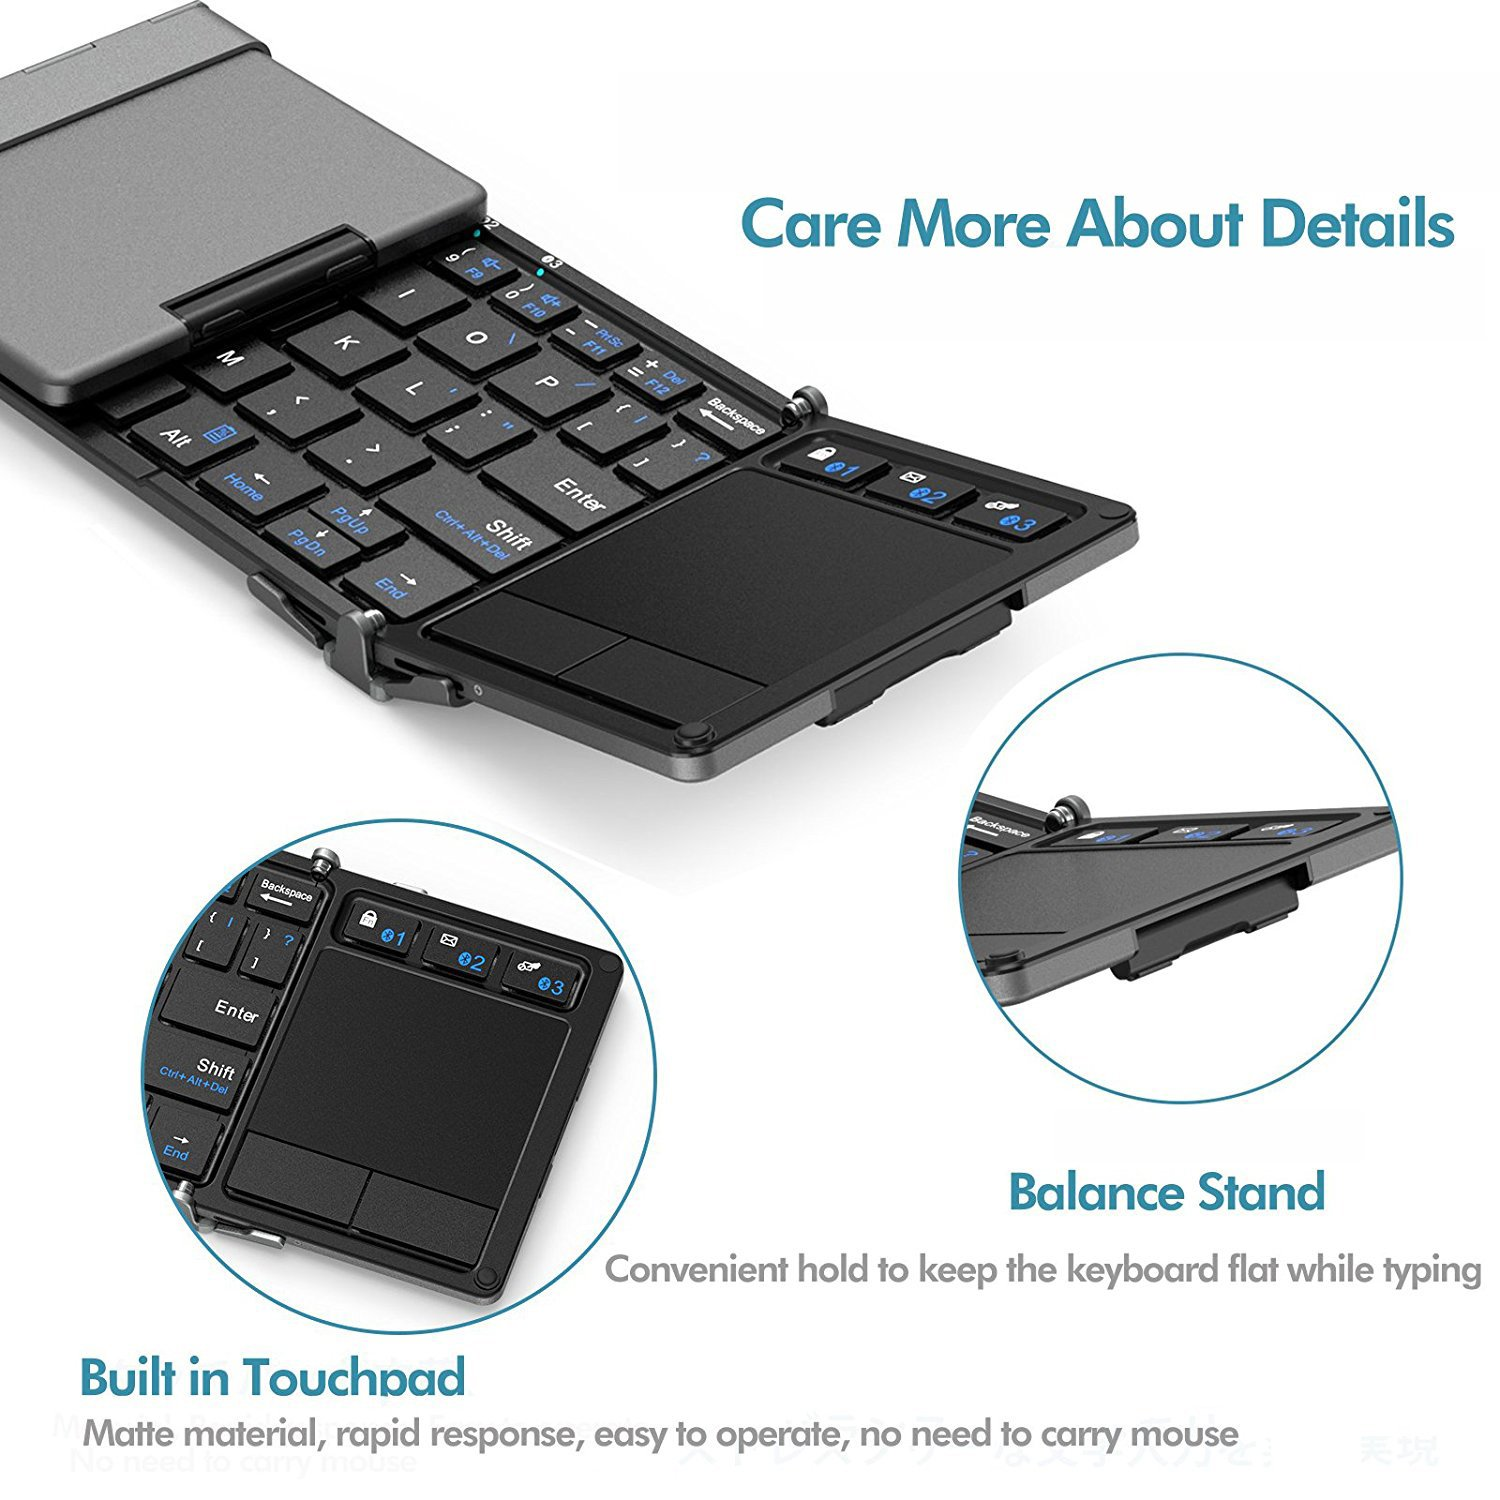 Bluetooth Keyboard Iclever Folding With Cheap Circuit Design Find Deals On Sensitive Touch Pad Sync Up To 3 Devices Pocket Sized Tri Wireless